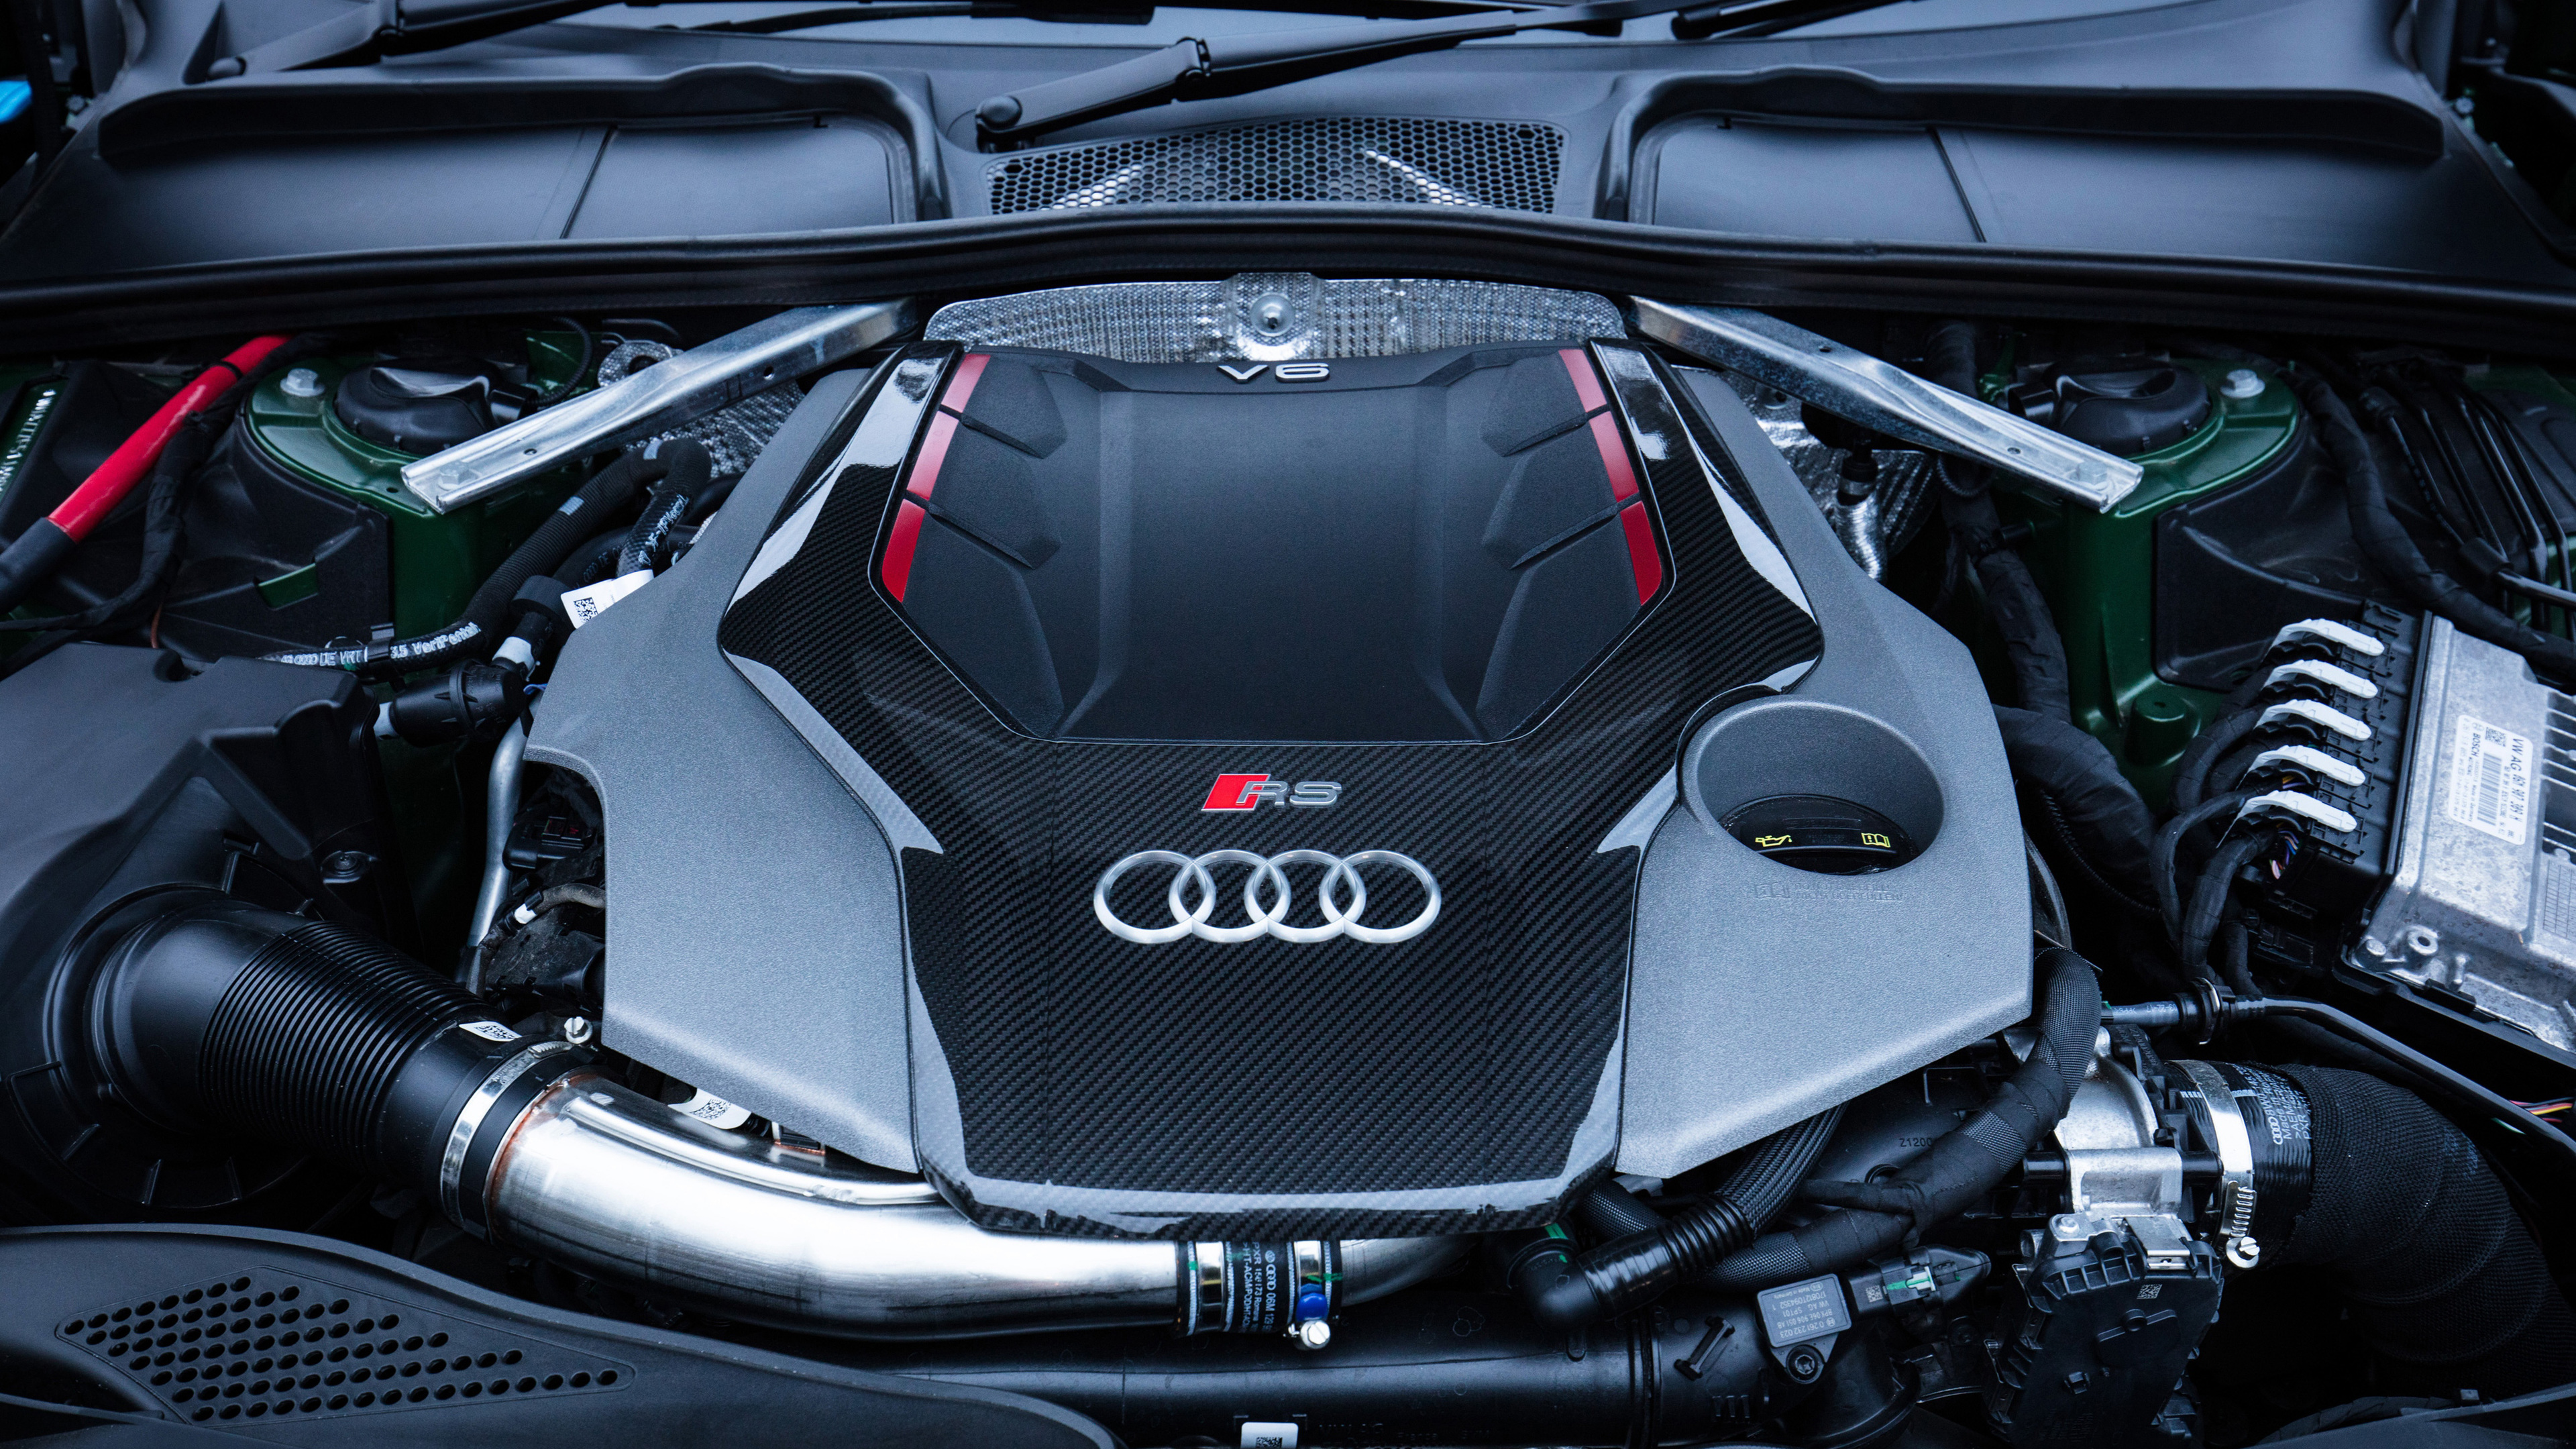 audi rs5 engine 1539108871 - Audi Rs5 Engine - speedometer wallpapers, interior wallpapers, hd-wallpapers, cars wallpapers, audi wallpapers, audi rs5 wallpapers, 4k-wallpapers